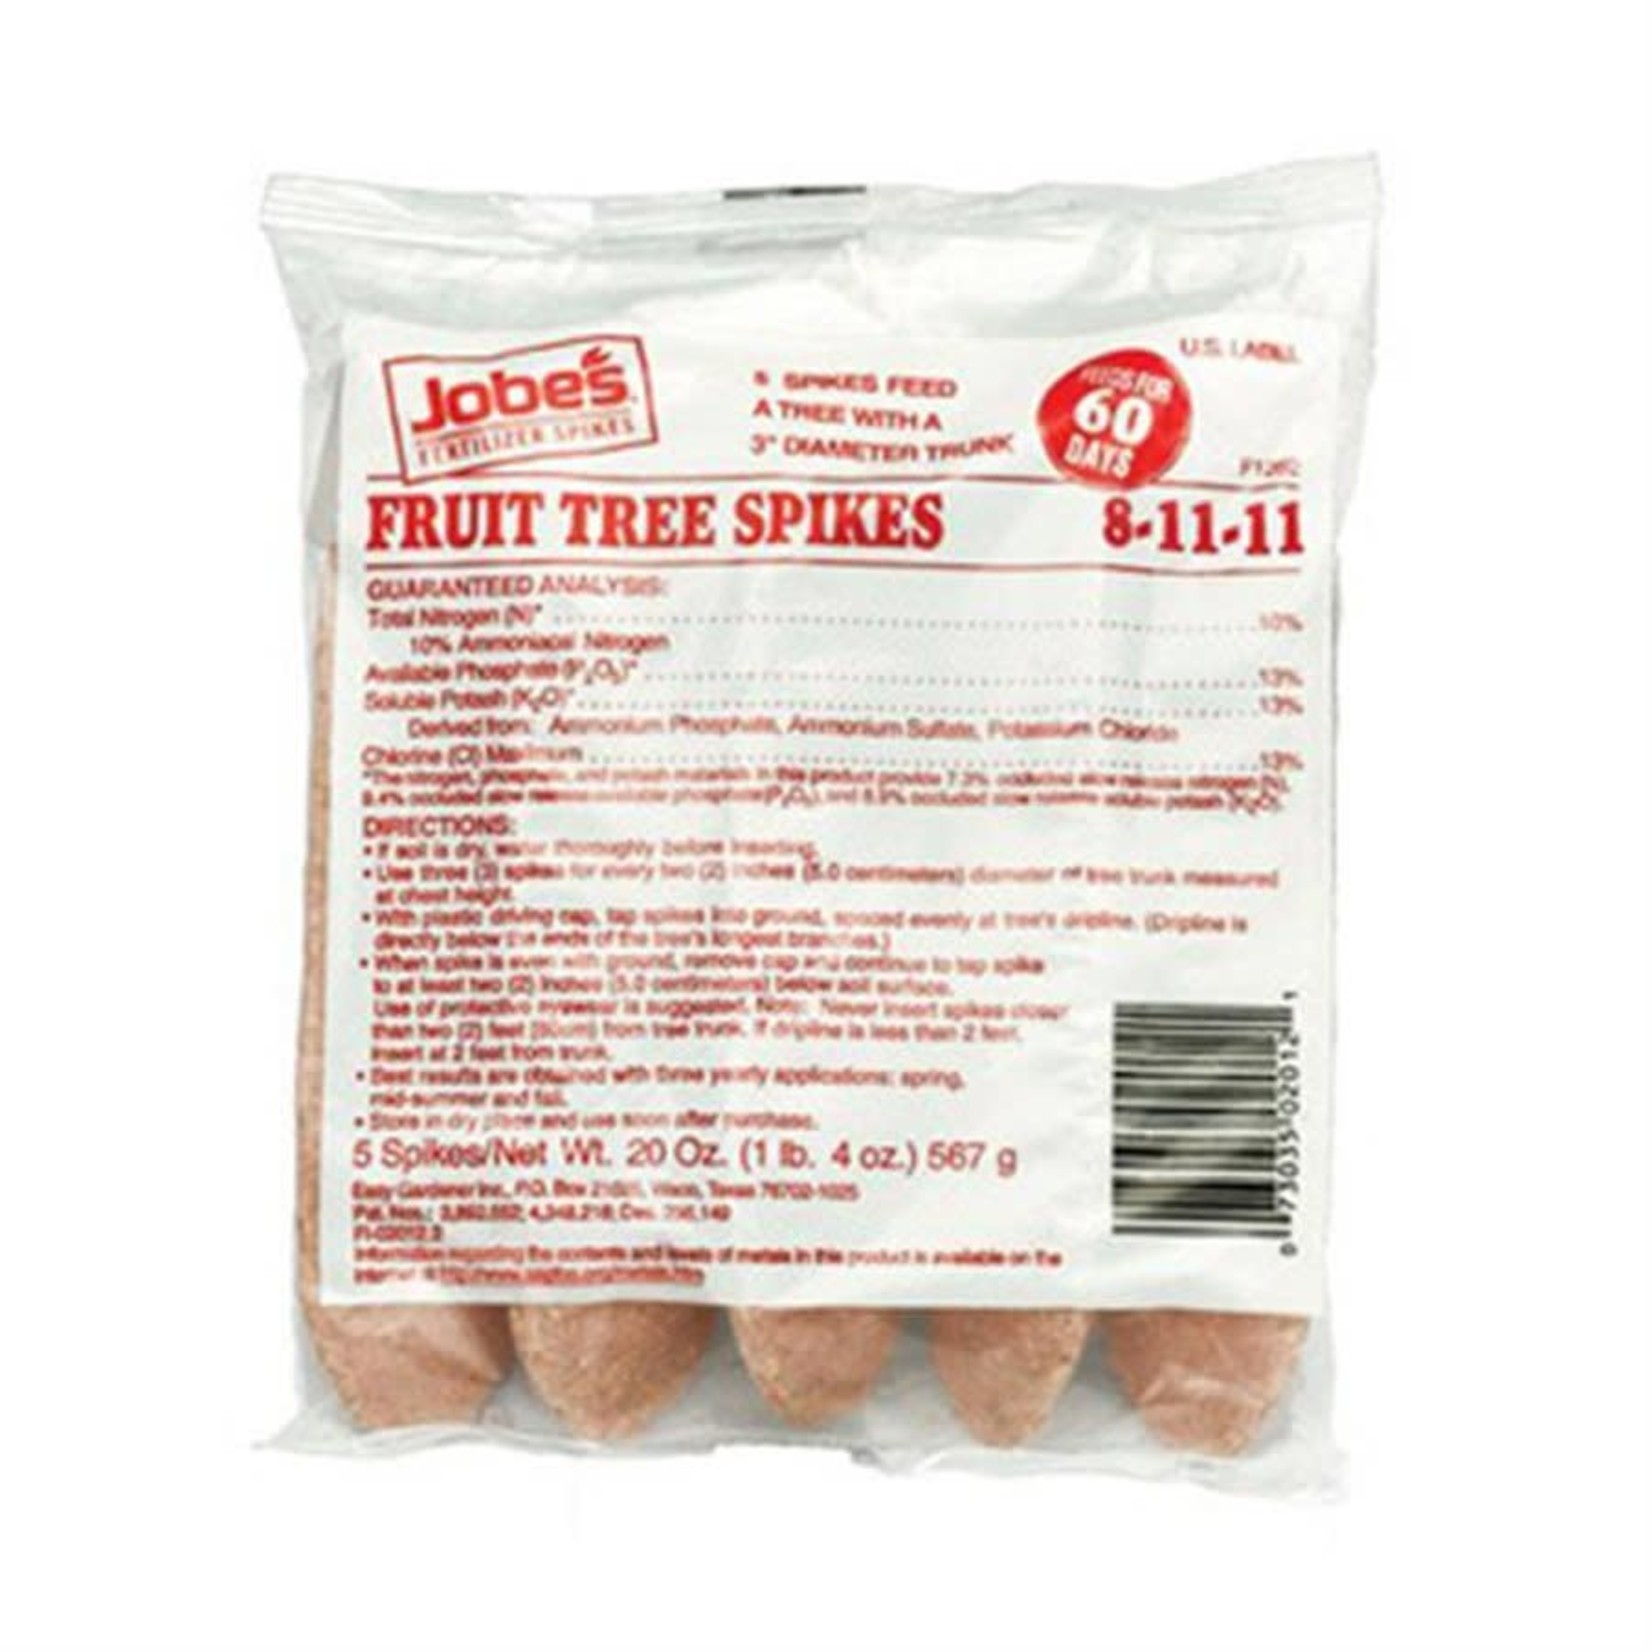 Jobes Fruit Tree Spikes- 5 pack 8-11-11